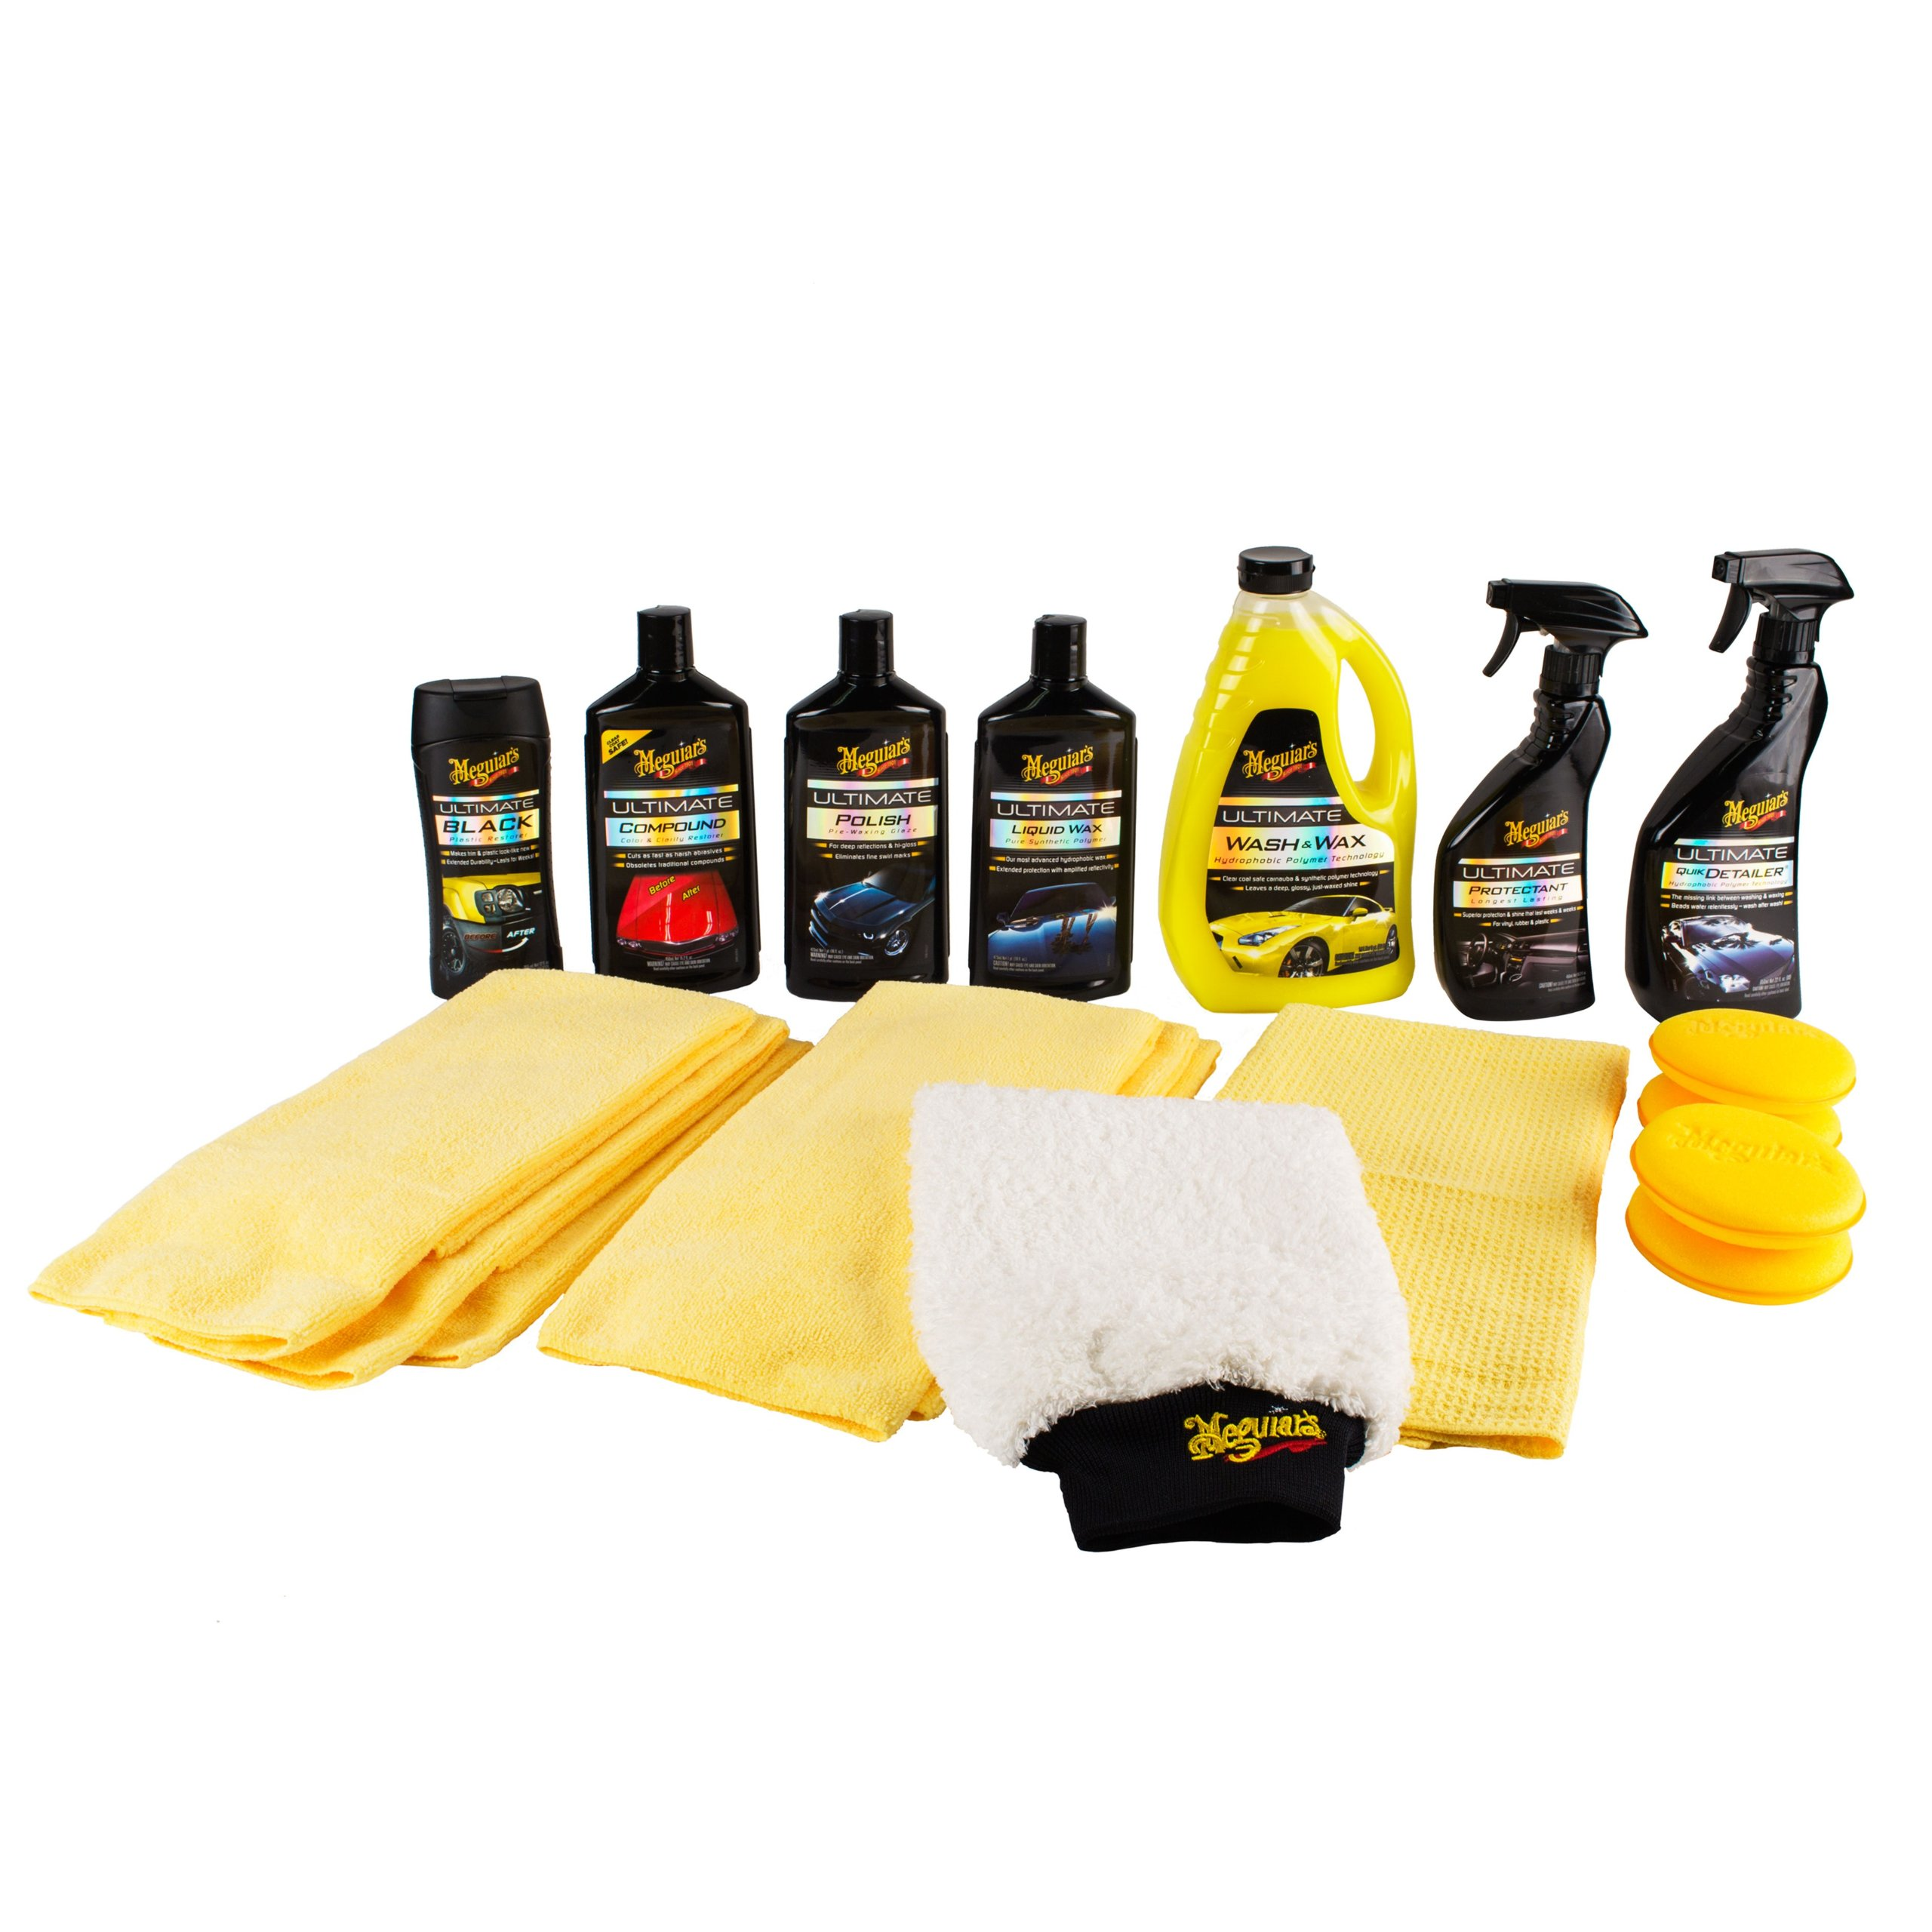 meguiar 39 s g55048 ultimate car care kit. Black Bedroom Furniture Sets. Home Design Ideas